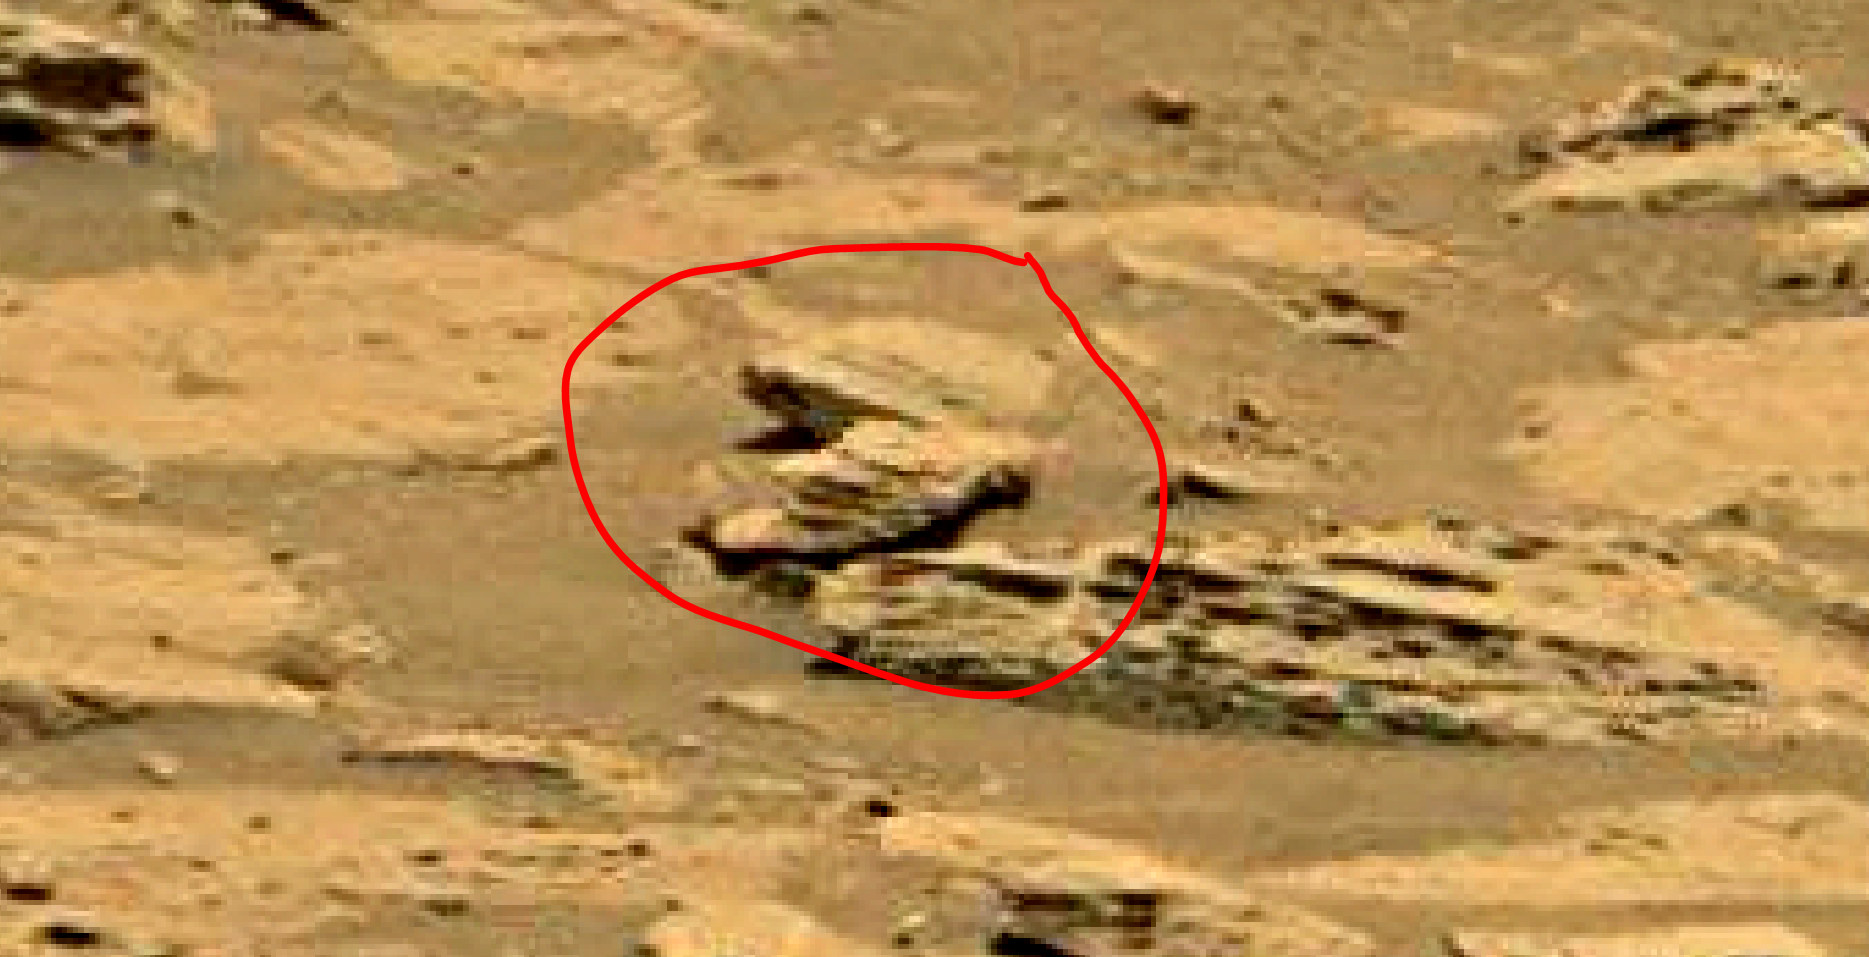 mars sol 1353 anomaly-artifacts 51a was life on mars